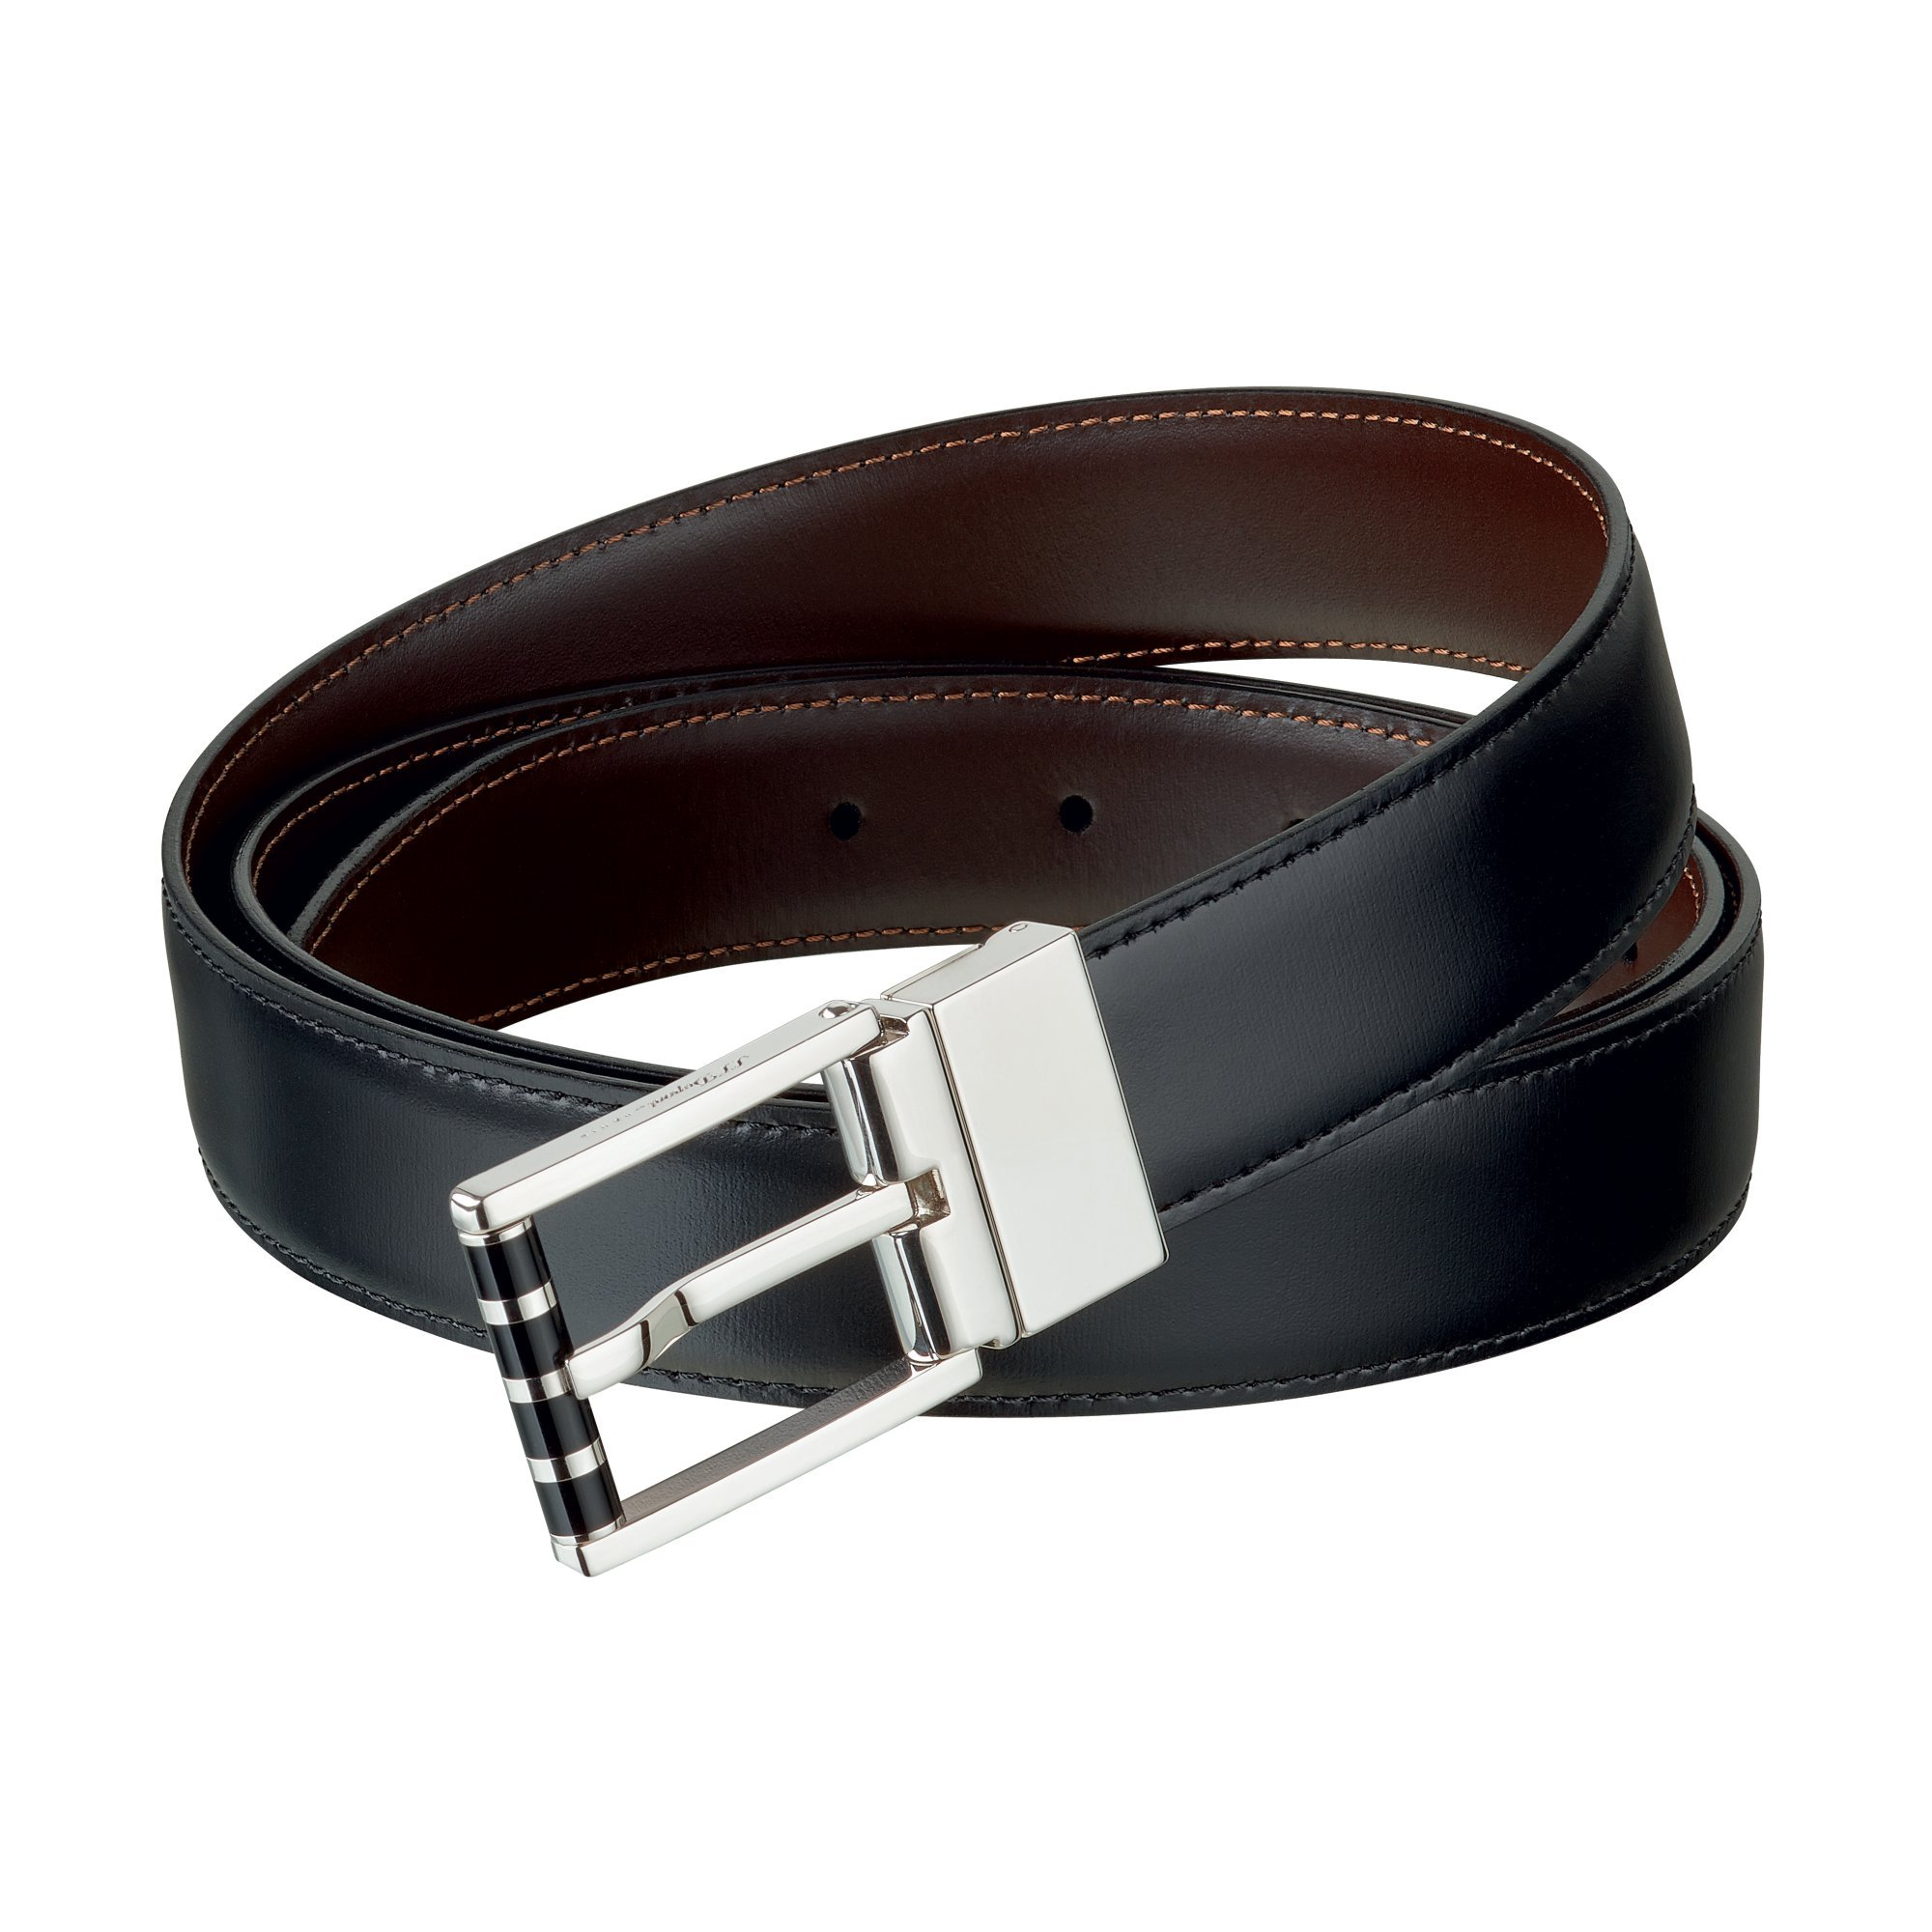 S.T. Dupont 9520120 Palladium Reversible Buckle Black/Brown Business Belt